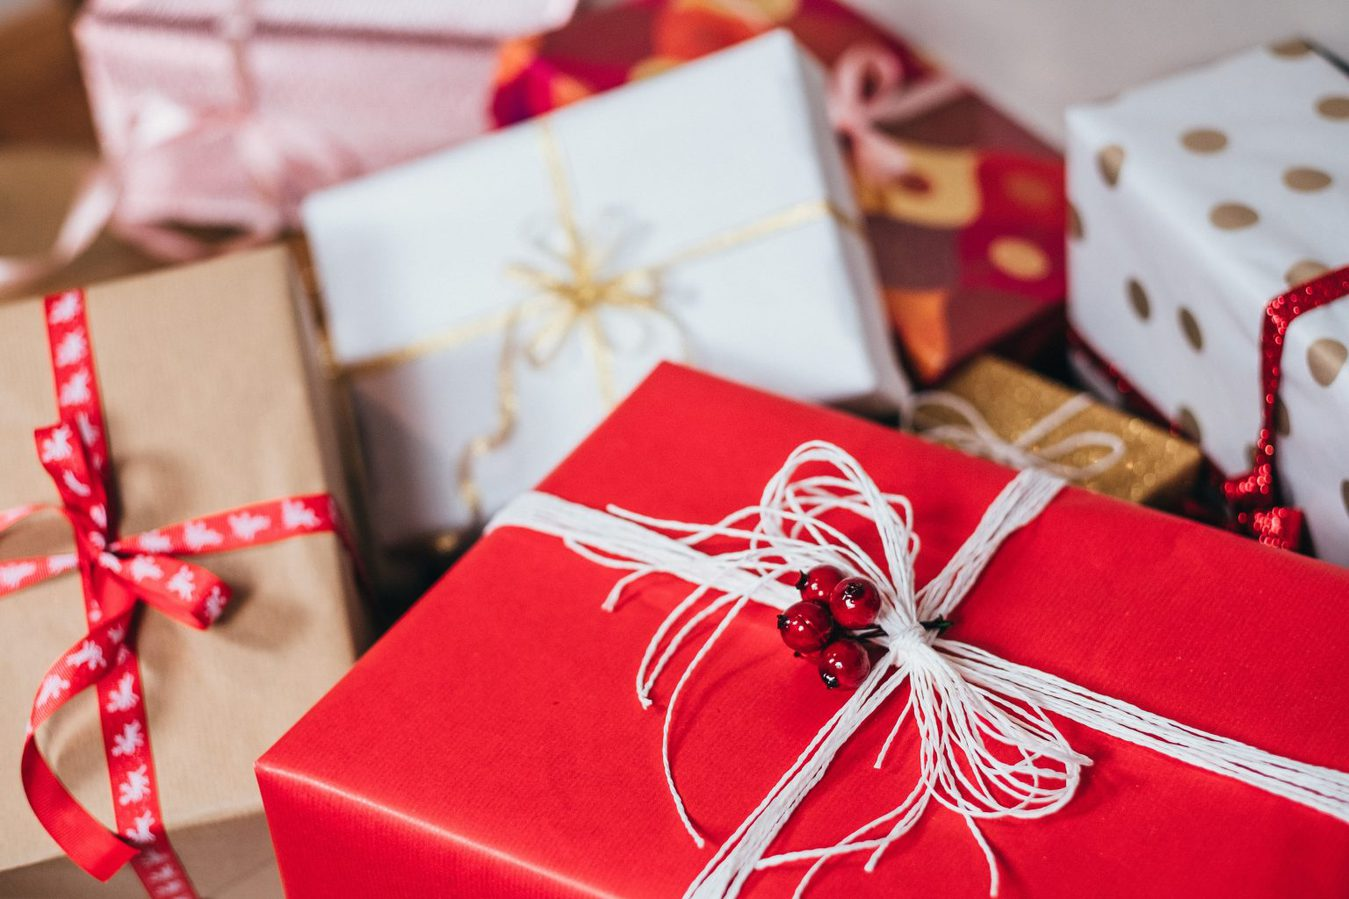 Gift-wrapped presents